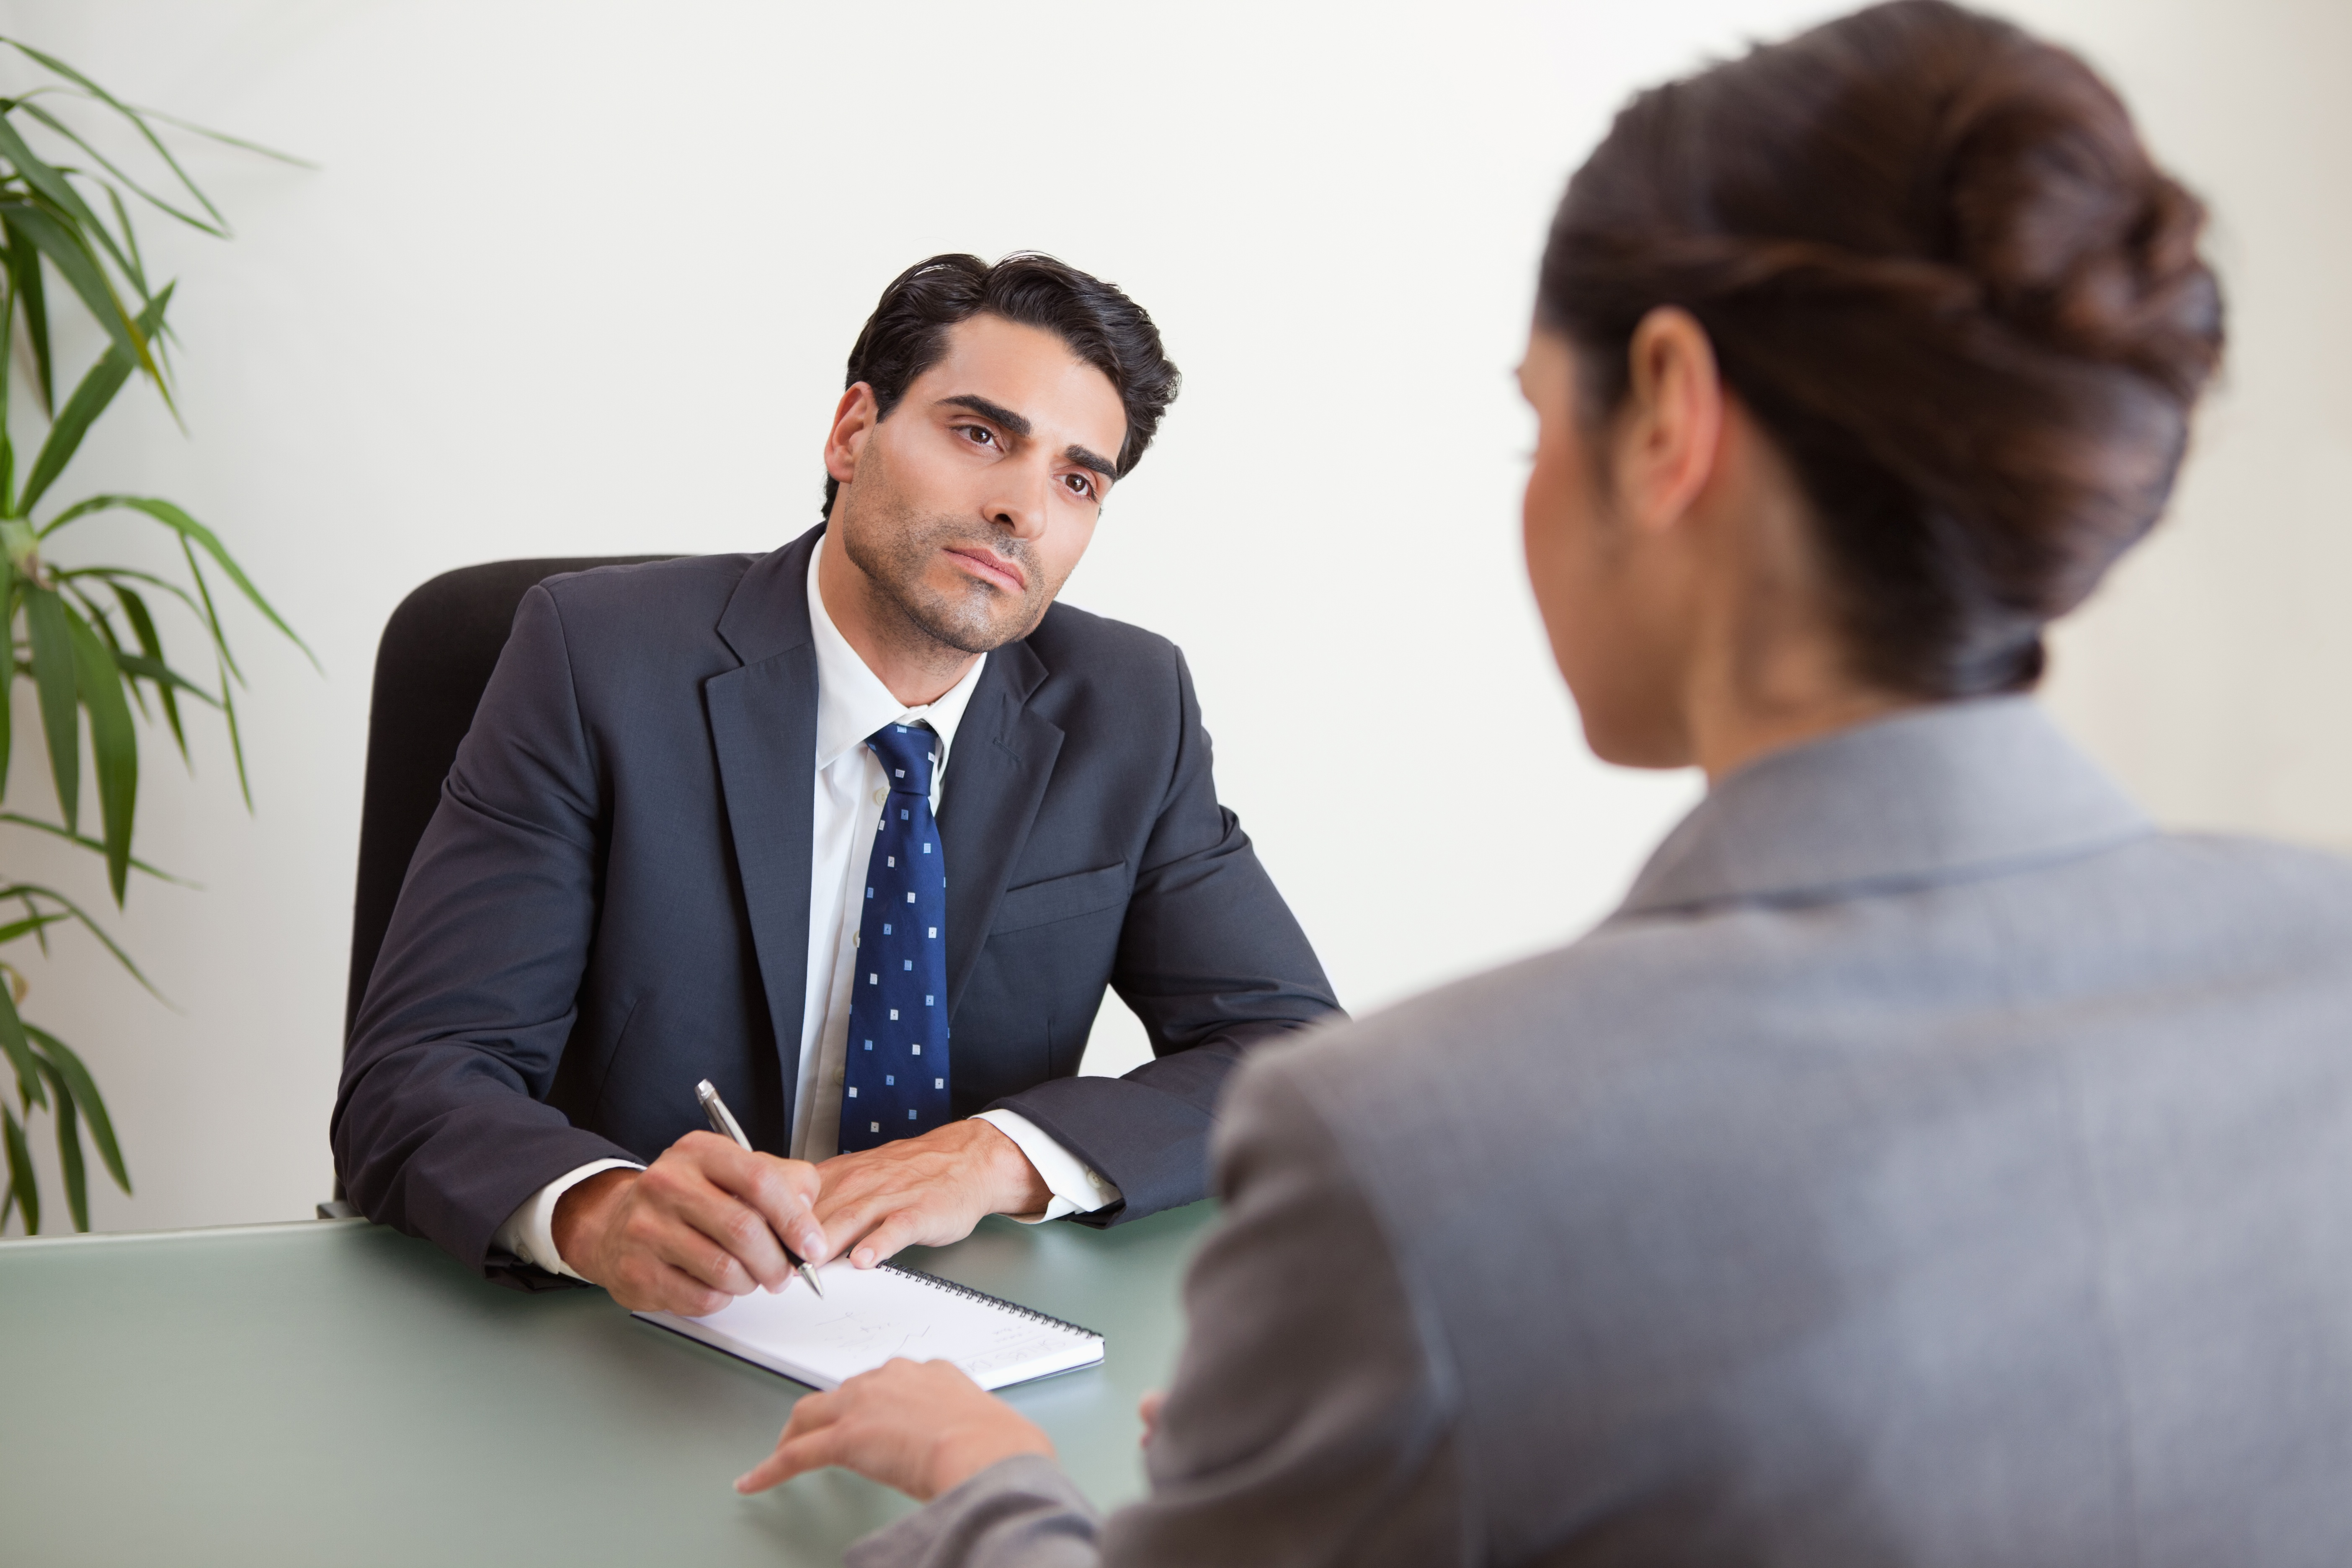 Sales Recruiters Look For In An Interview